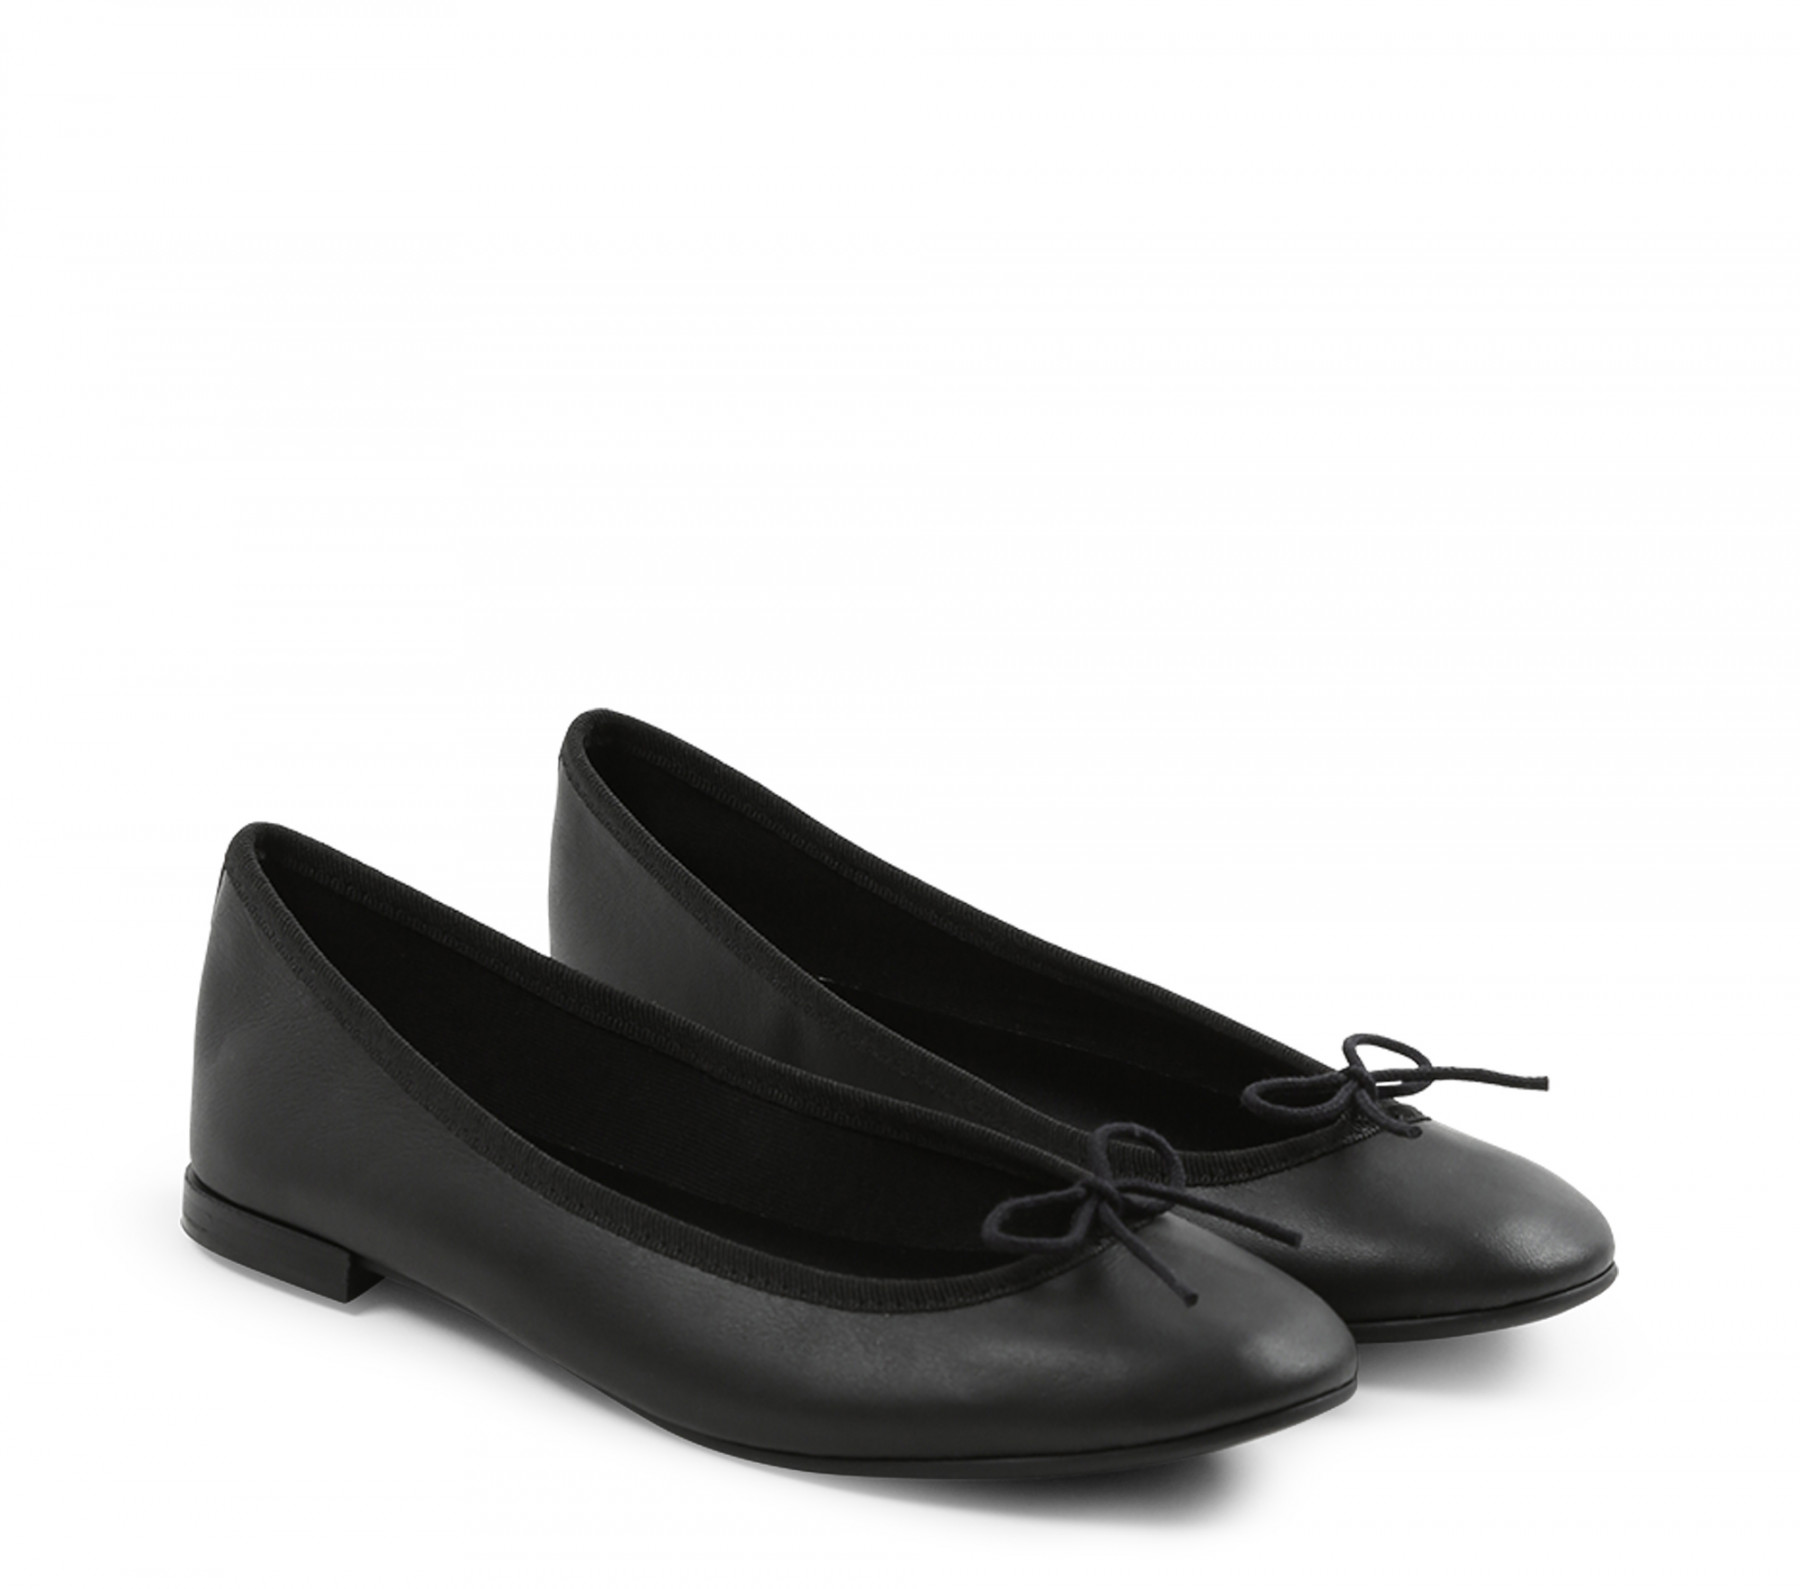 REPETTO Lili Ballerinas